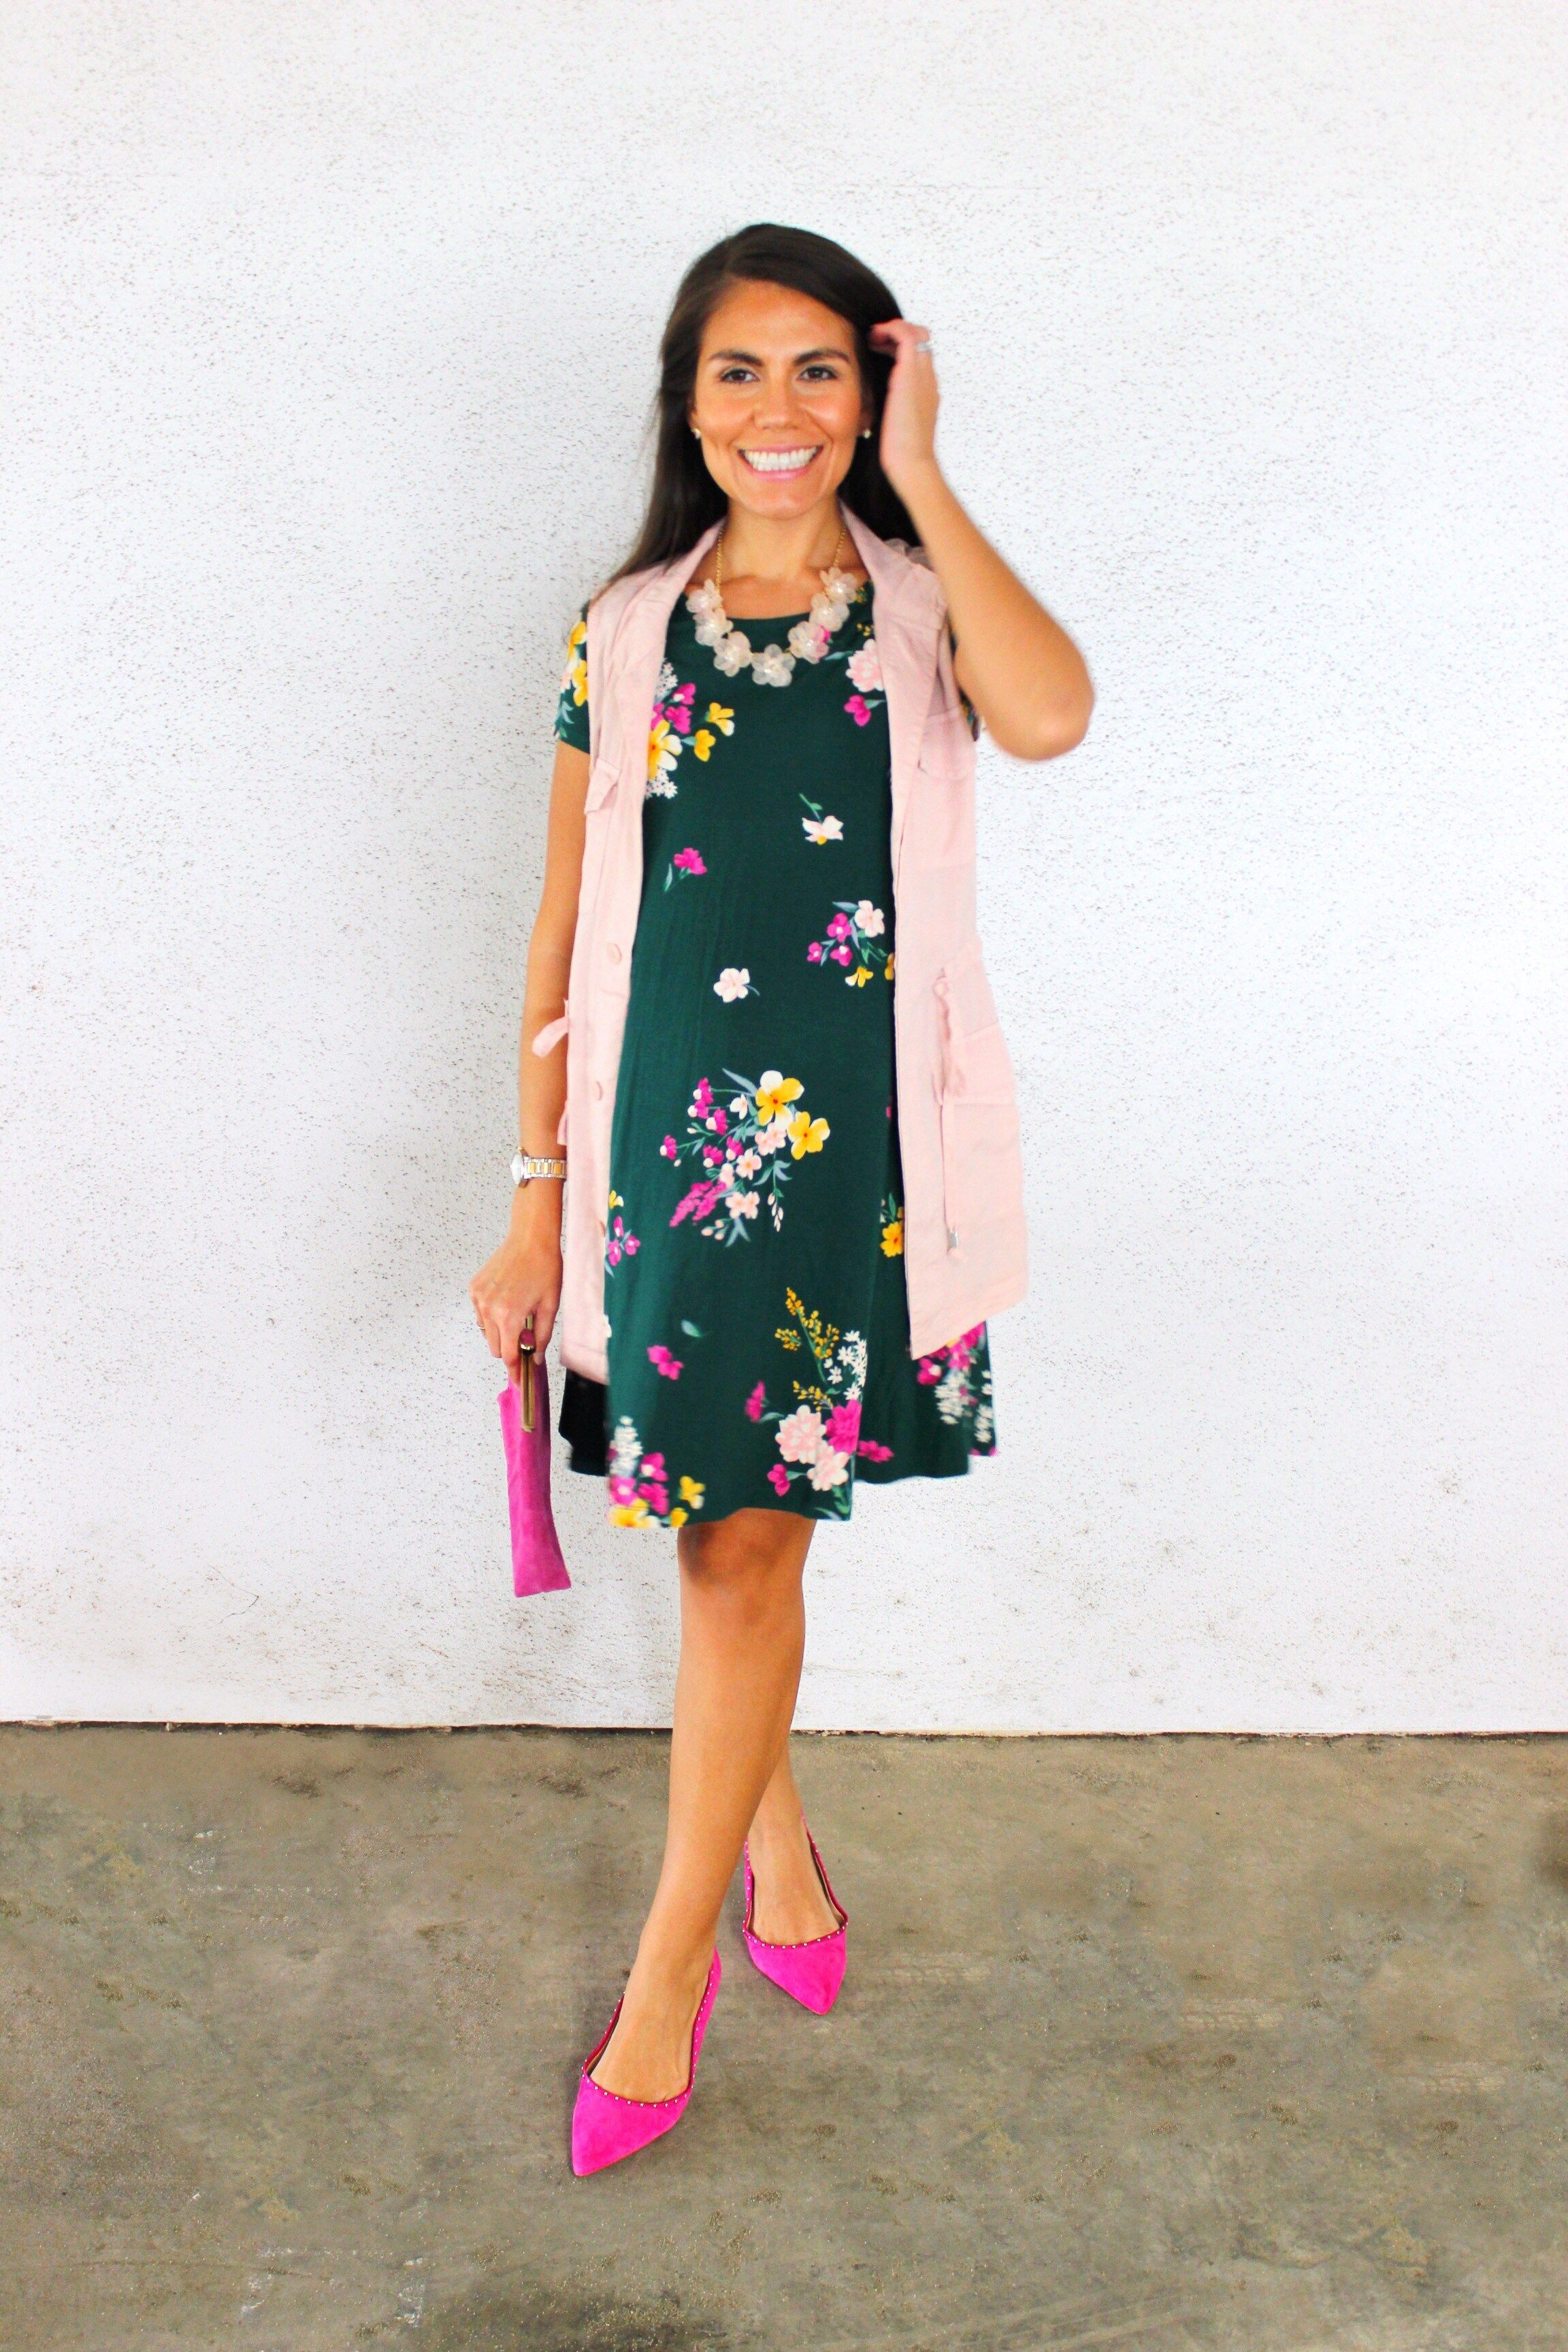 7f95ba2751 Lovely in Green Floral Dress: Old Navy Try-On Session | Lovely in Pink:  Fashion | Pinterest | Green floral dress, Pink fashion and Navy